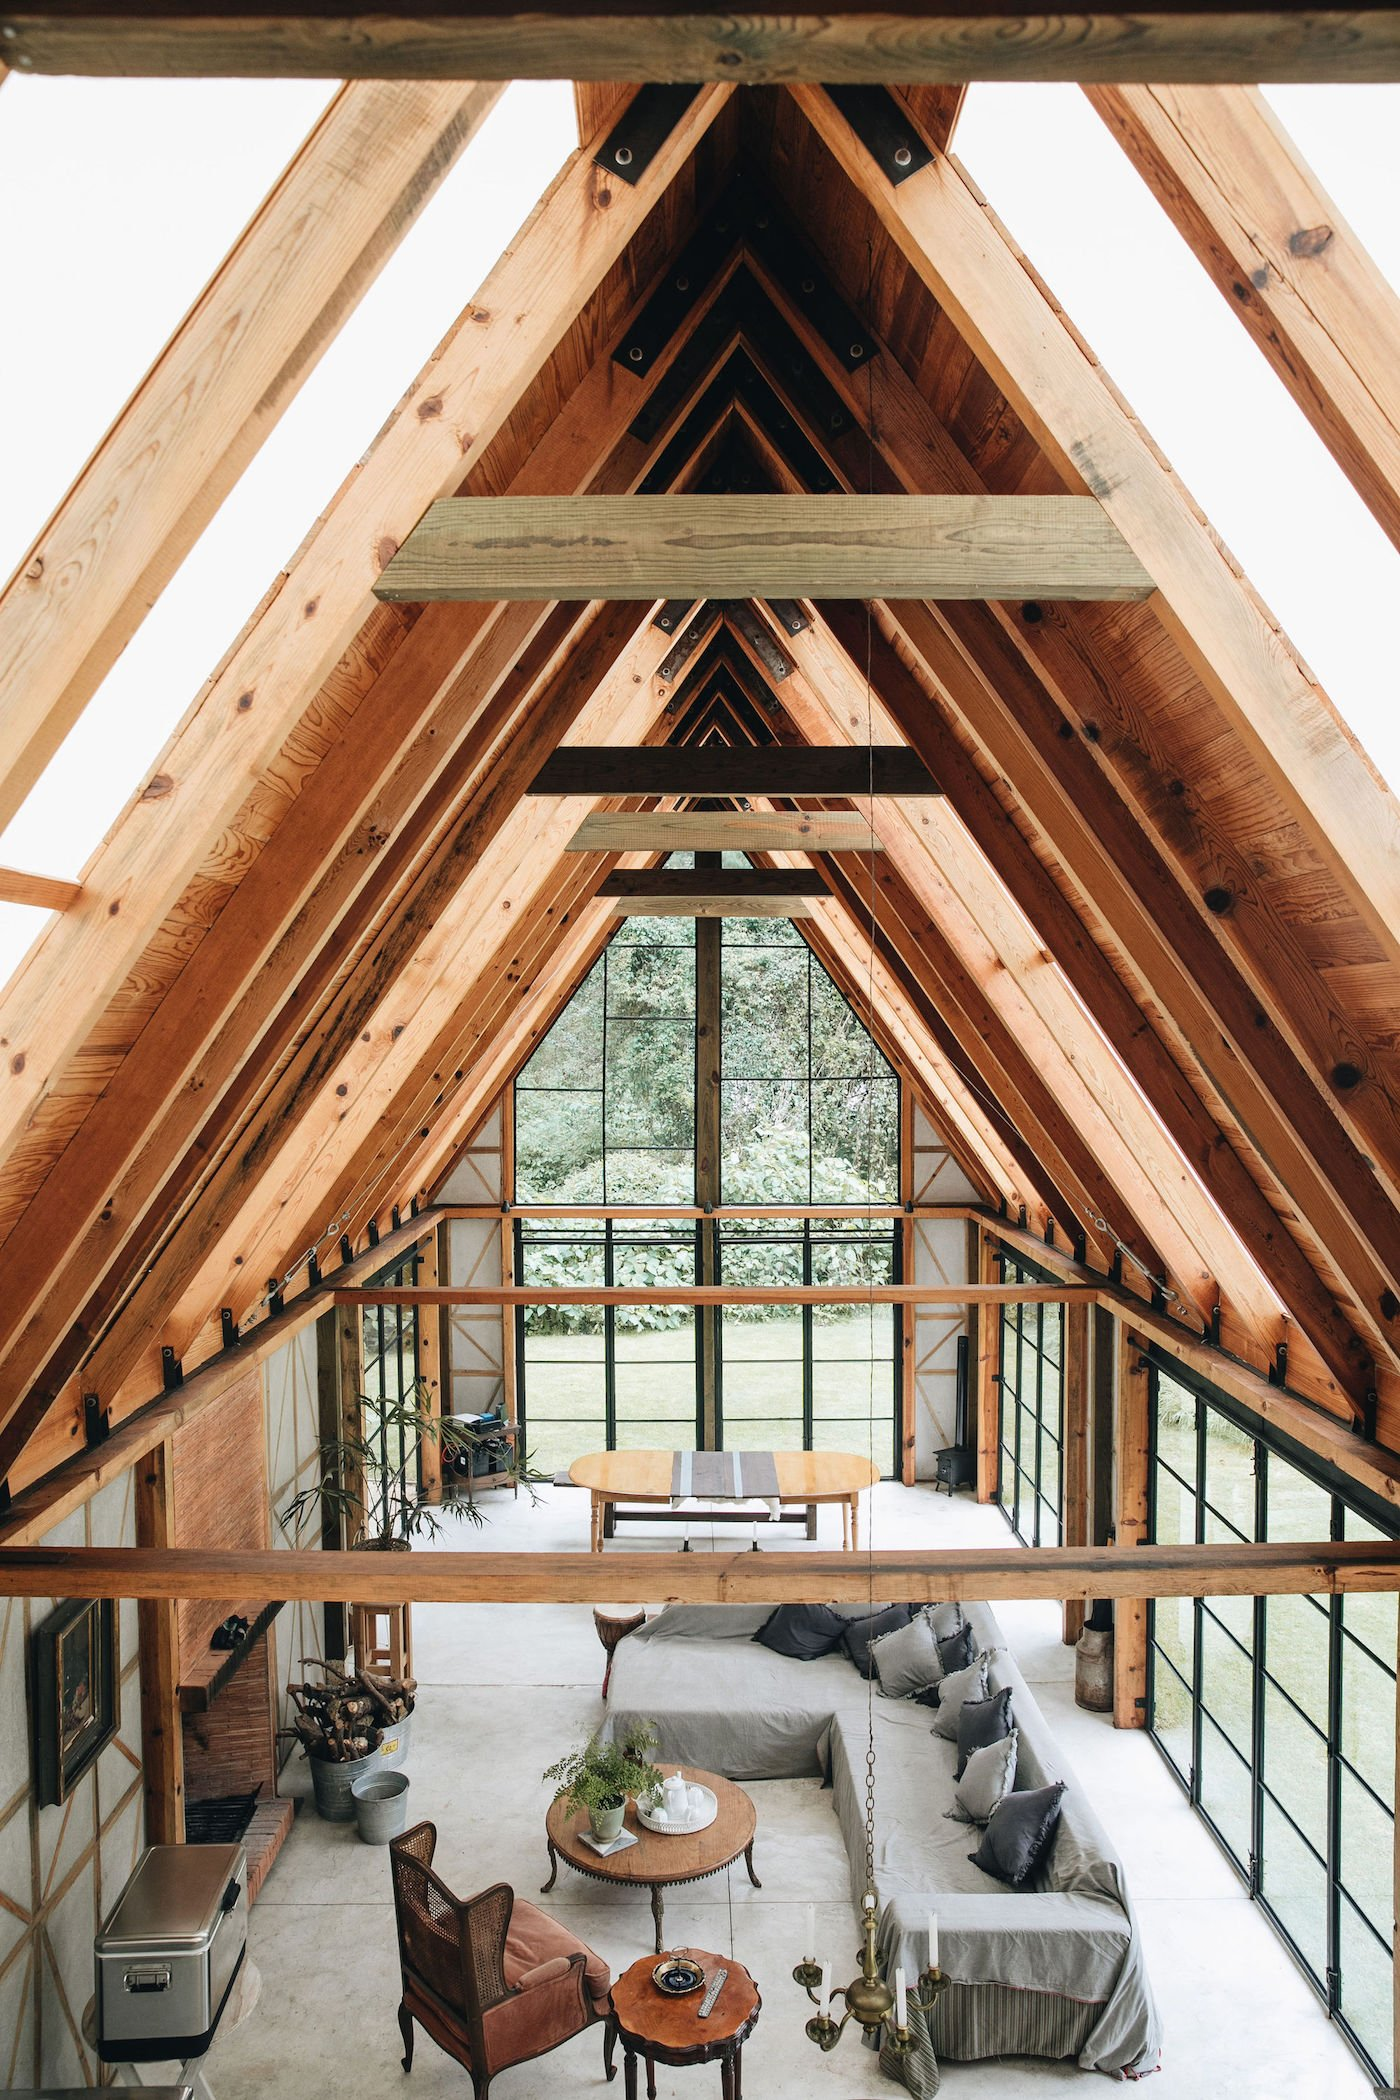 View through timber home with gabled roof